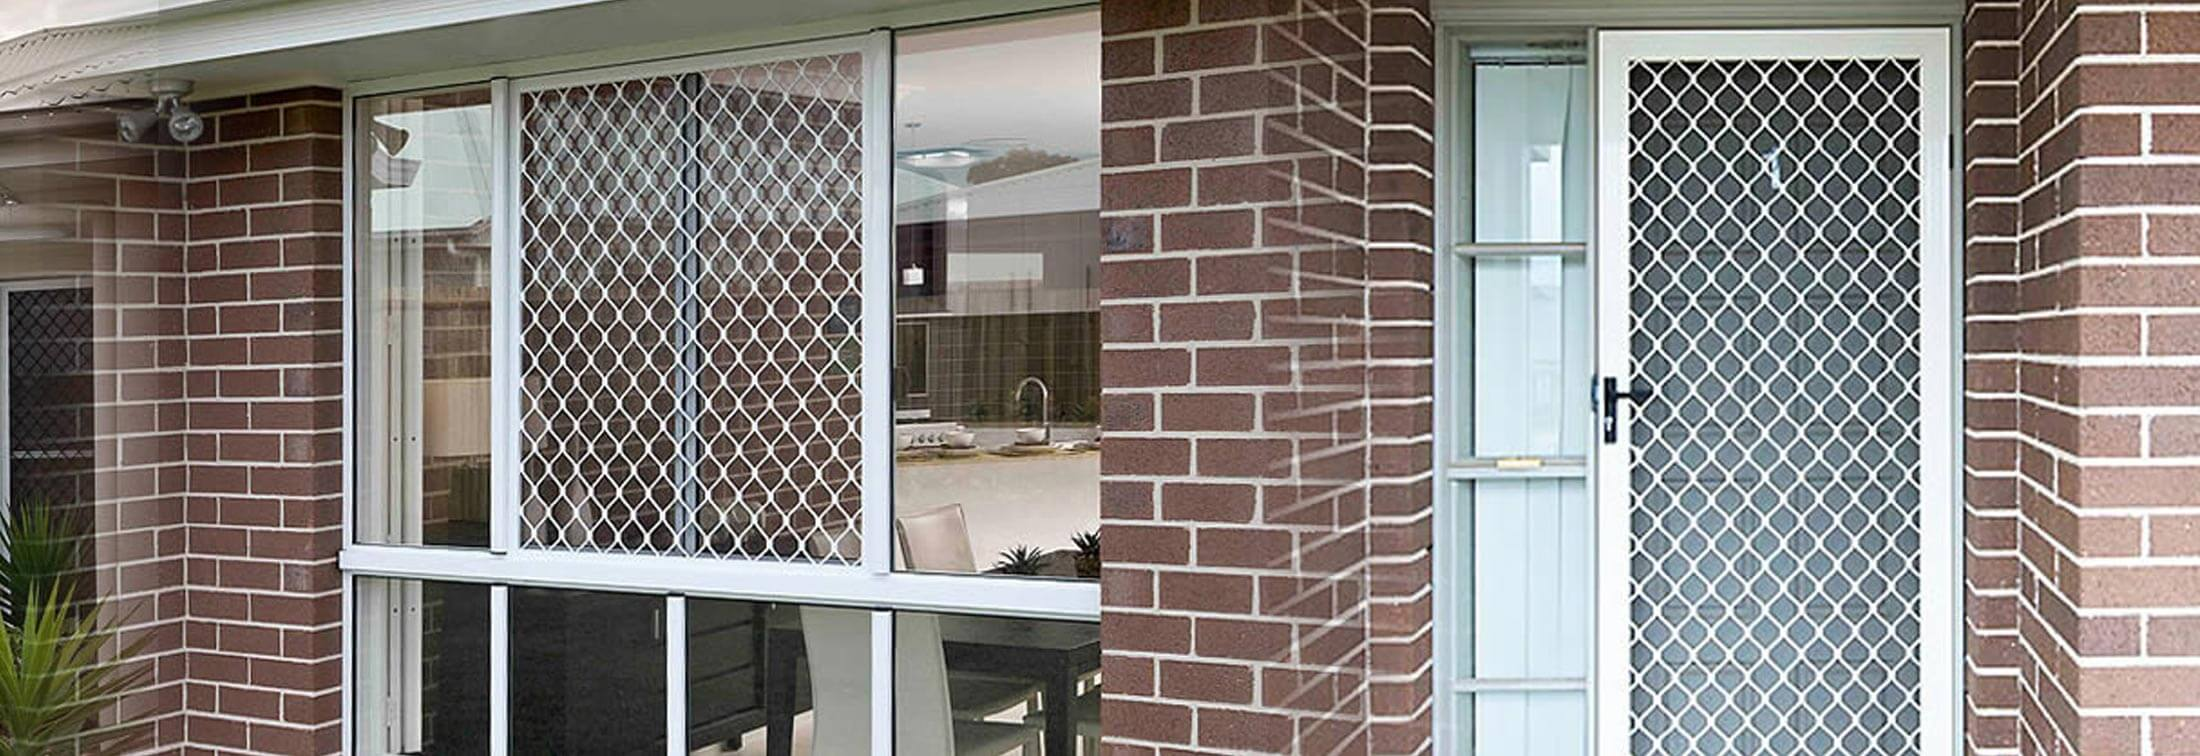 diamond grille security door adelaide & Diamond Grille Security Doors Adelaide - W\u0026S Security Doors \u0026 Screens